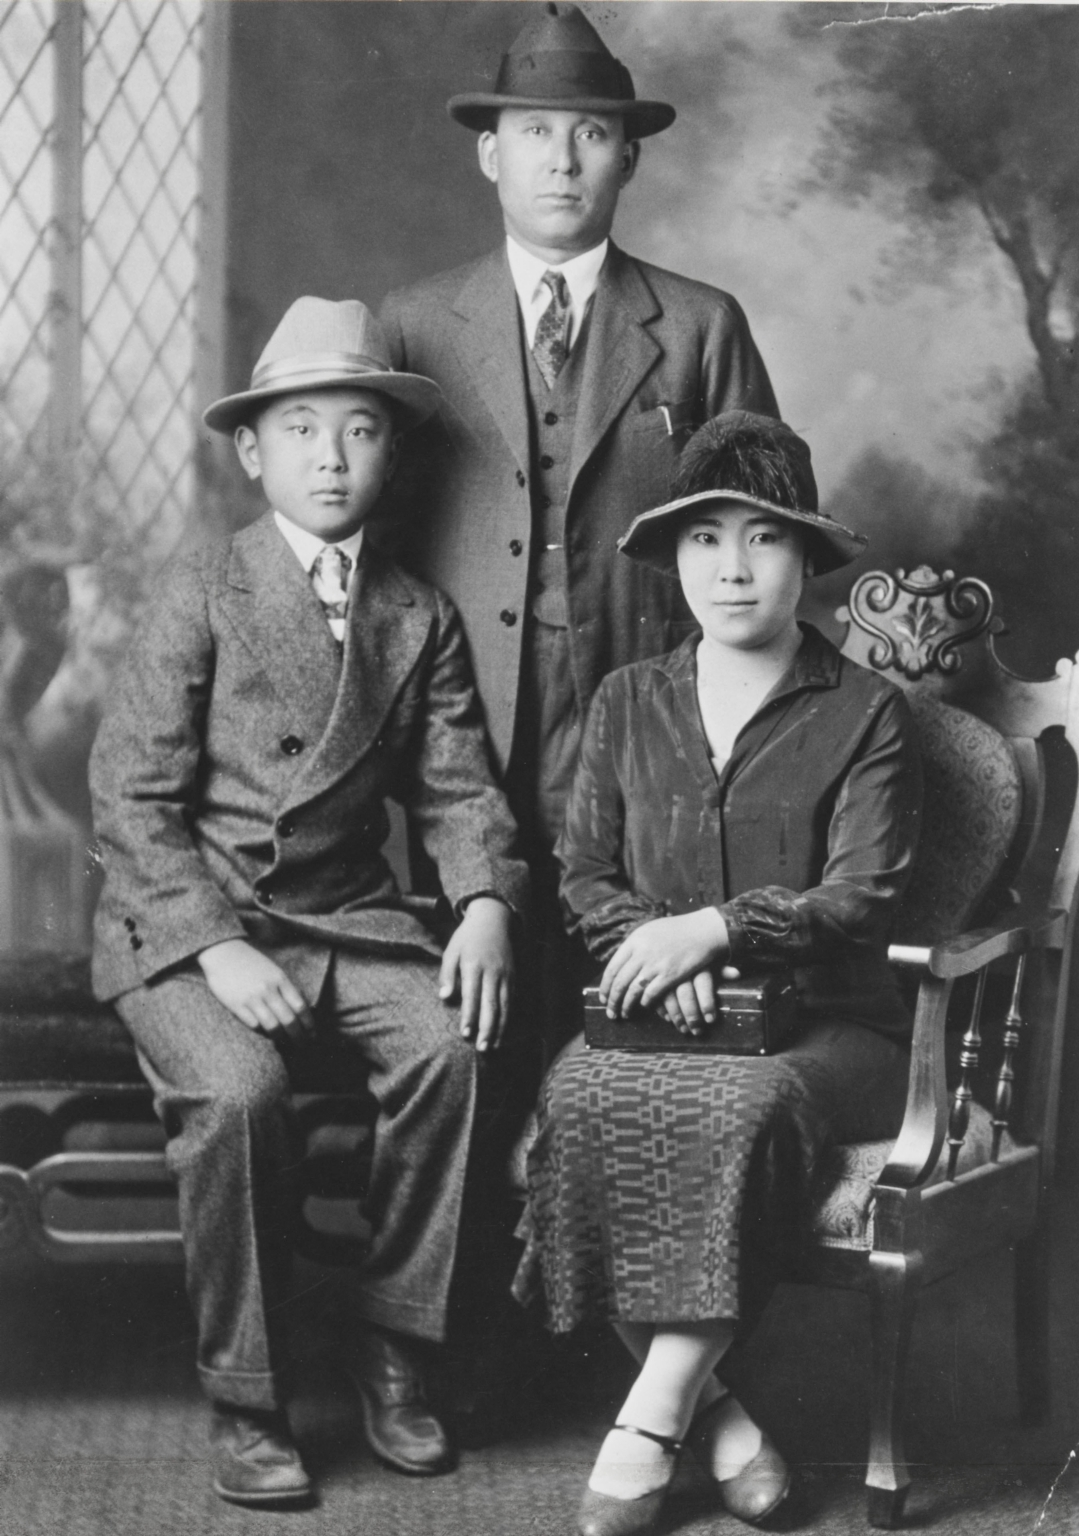 Paul, Tom and Mary Kurokawa, San Luis Obispo : 1925.